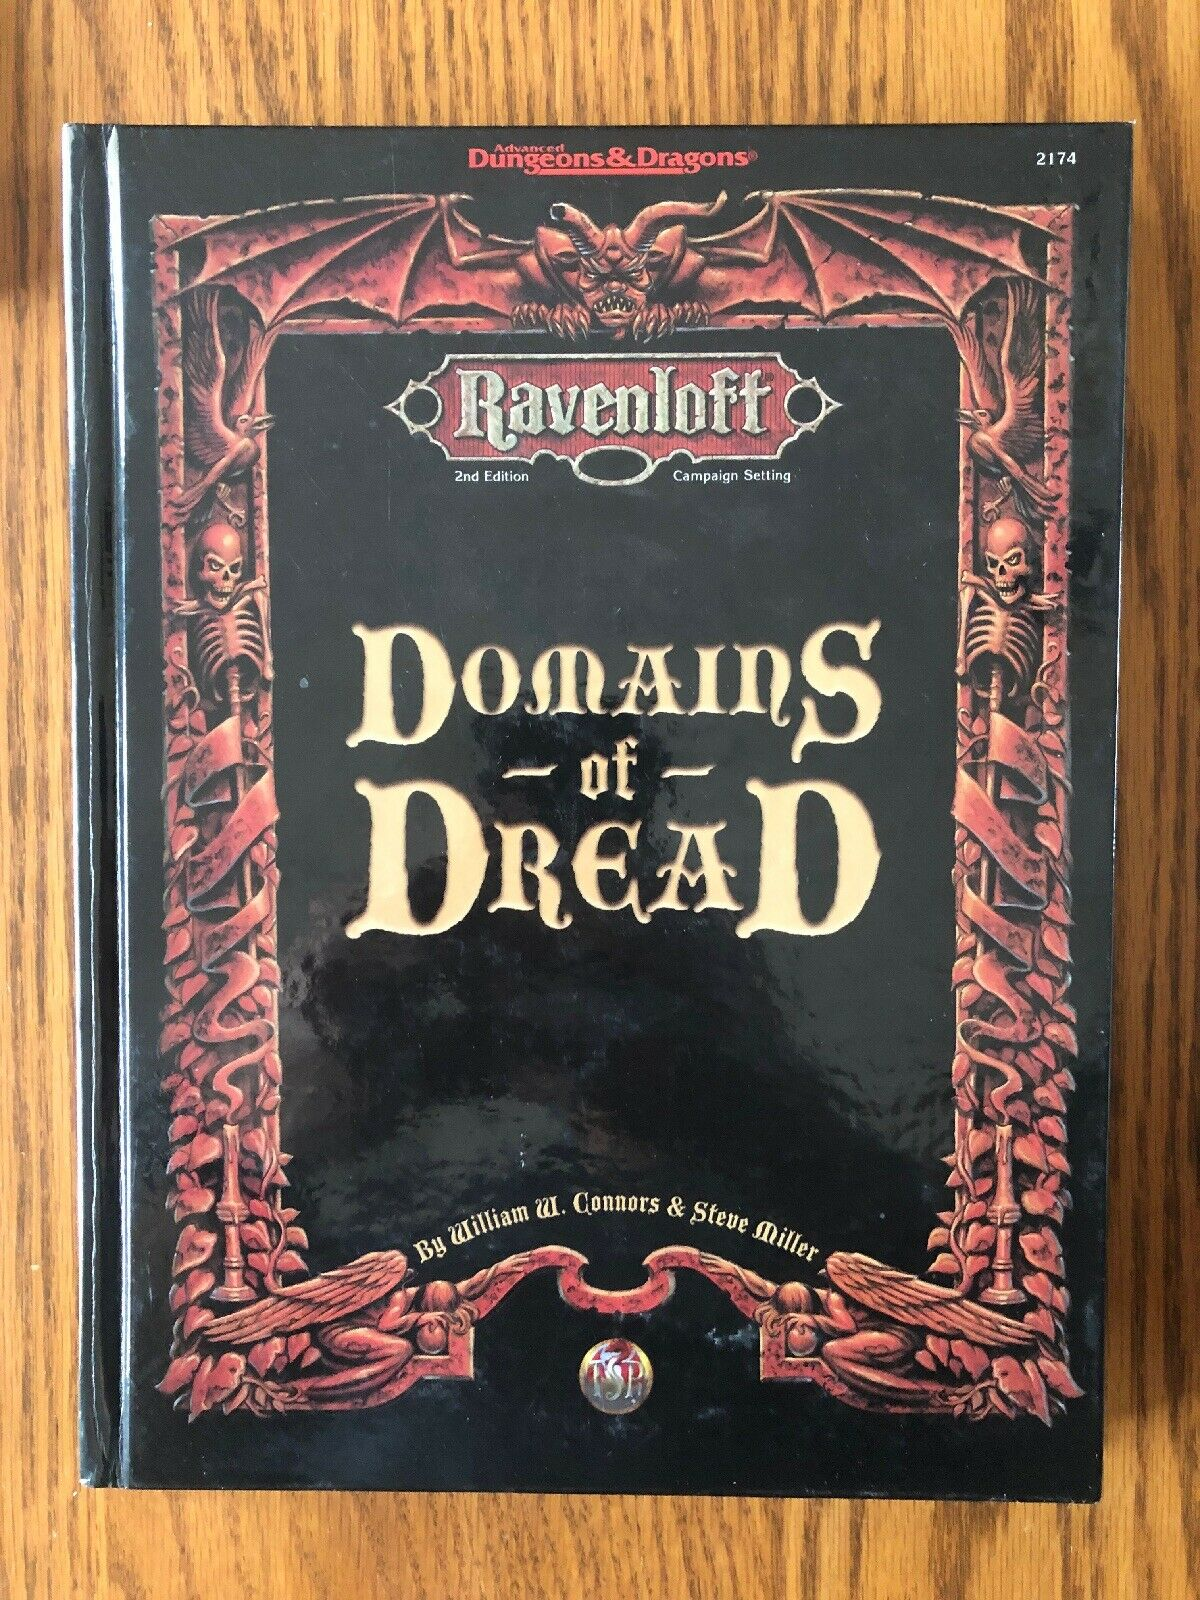 NM  DOMAINS OF DREAD Campaign Setting Dungeons & Dragons Ravenloft 1997  2174